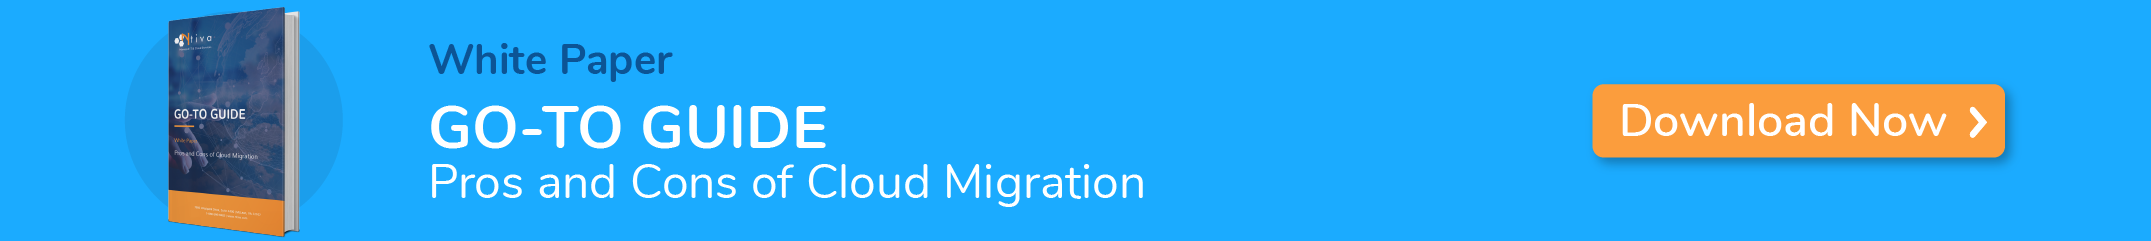 Call to action for the Go-To Guide for Pros and Cons to Cloud Migration